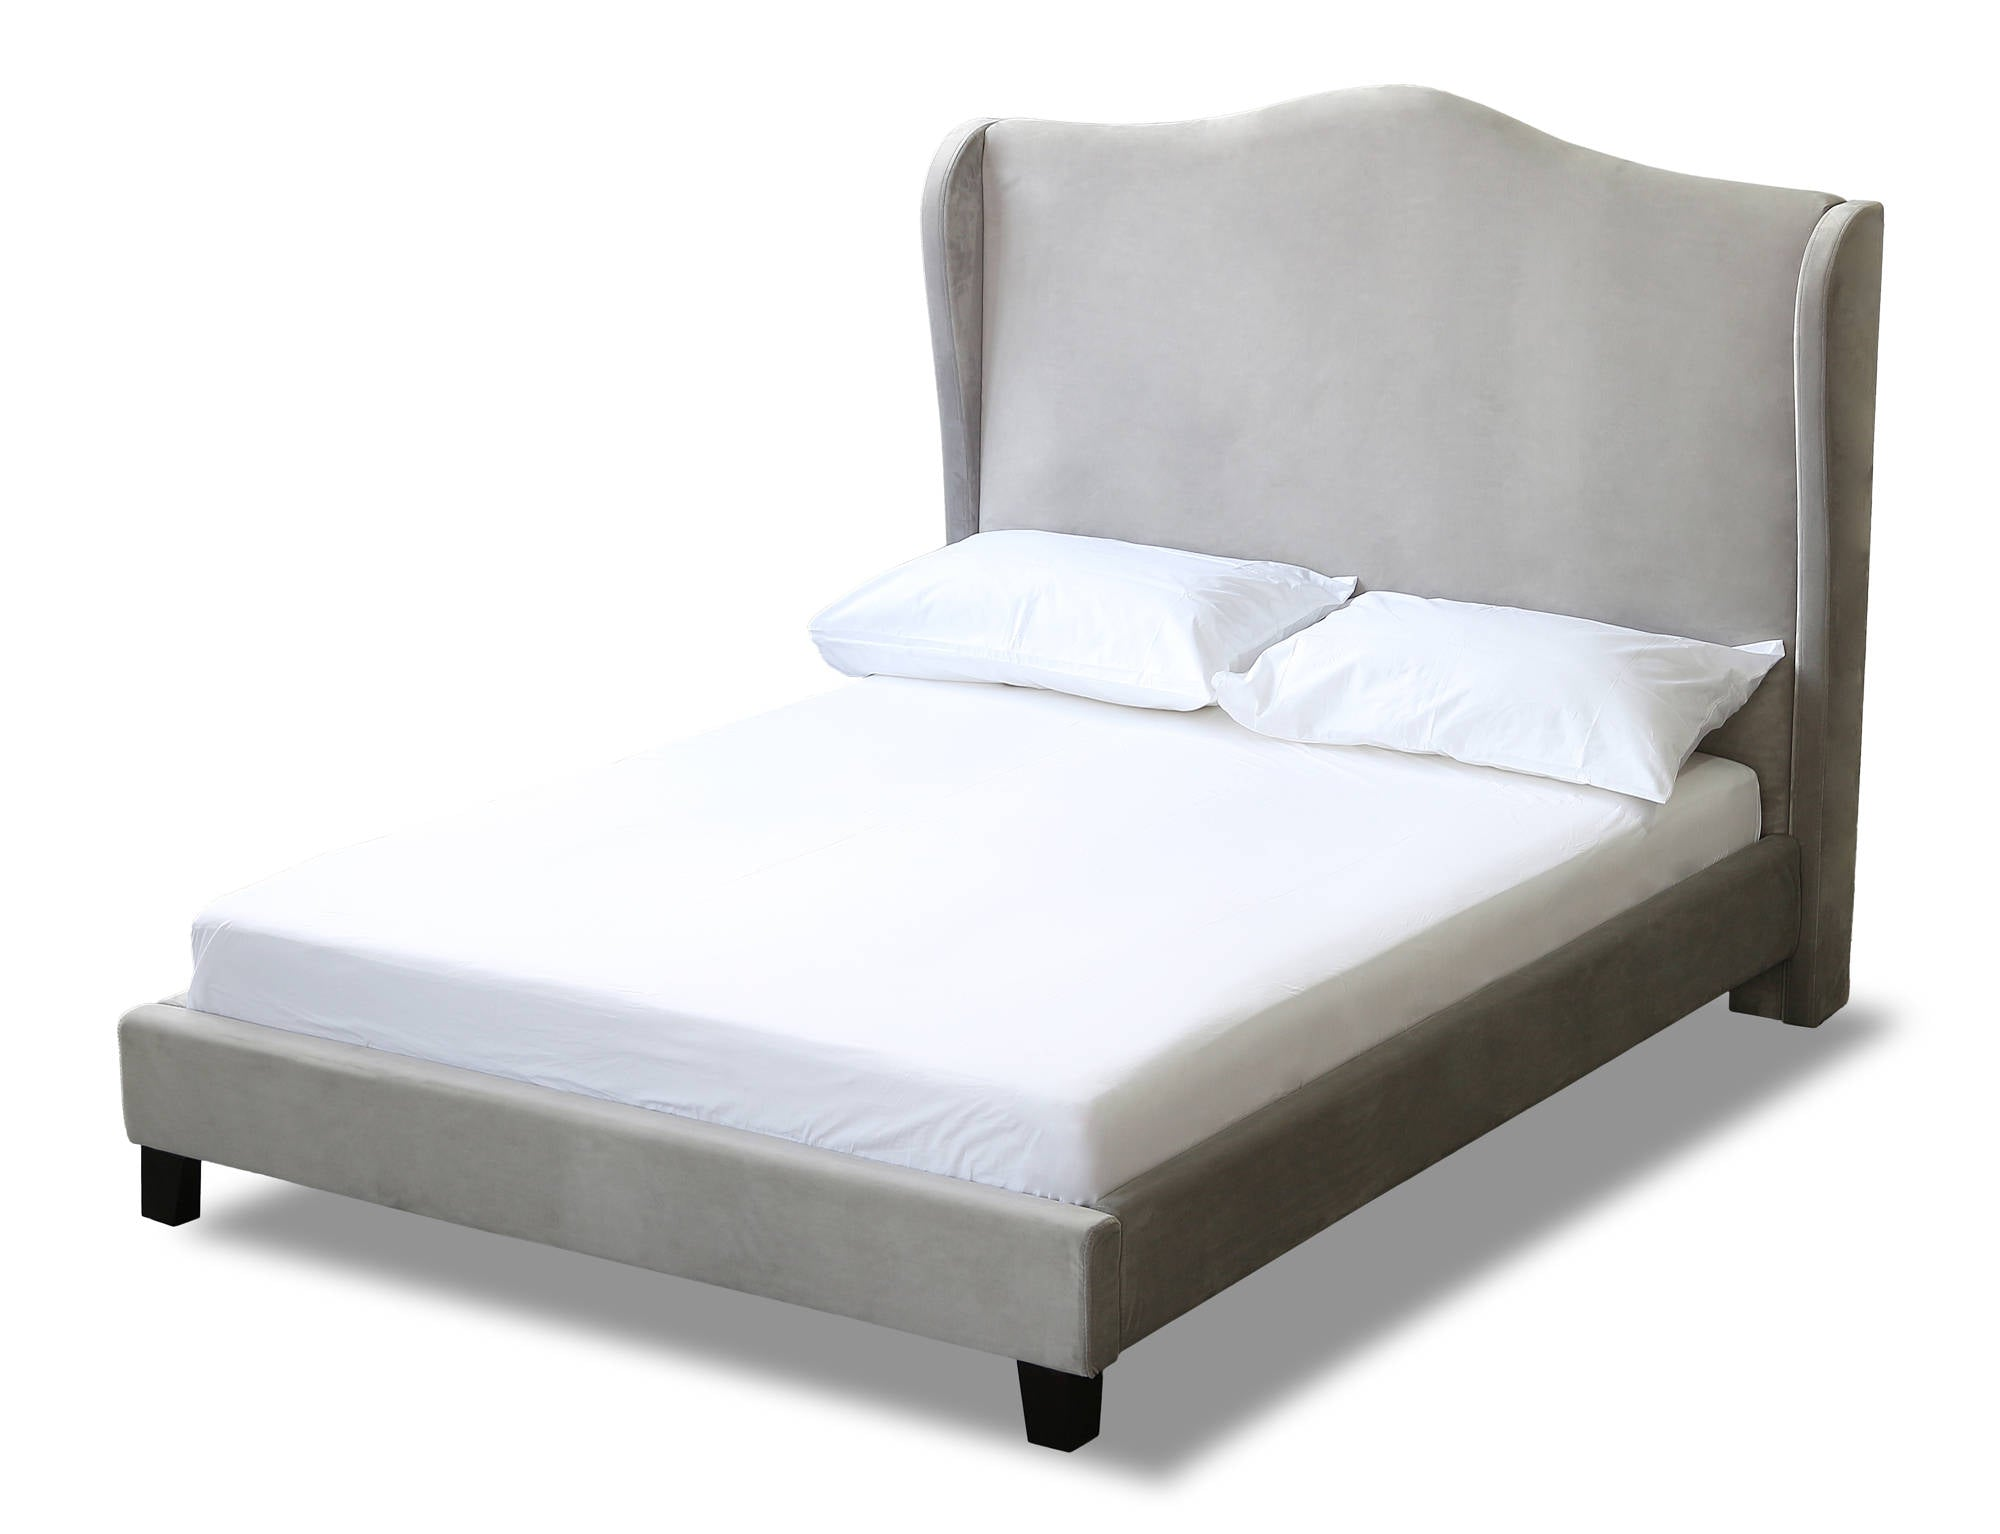 Cheverny King Size Bed in Silver - Ezzo